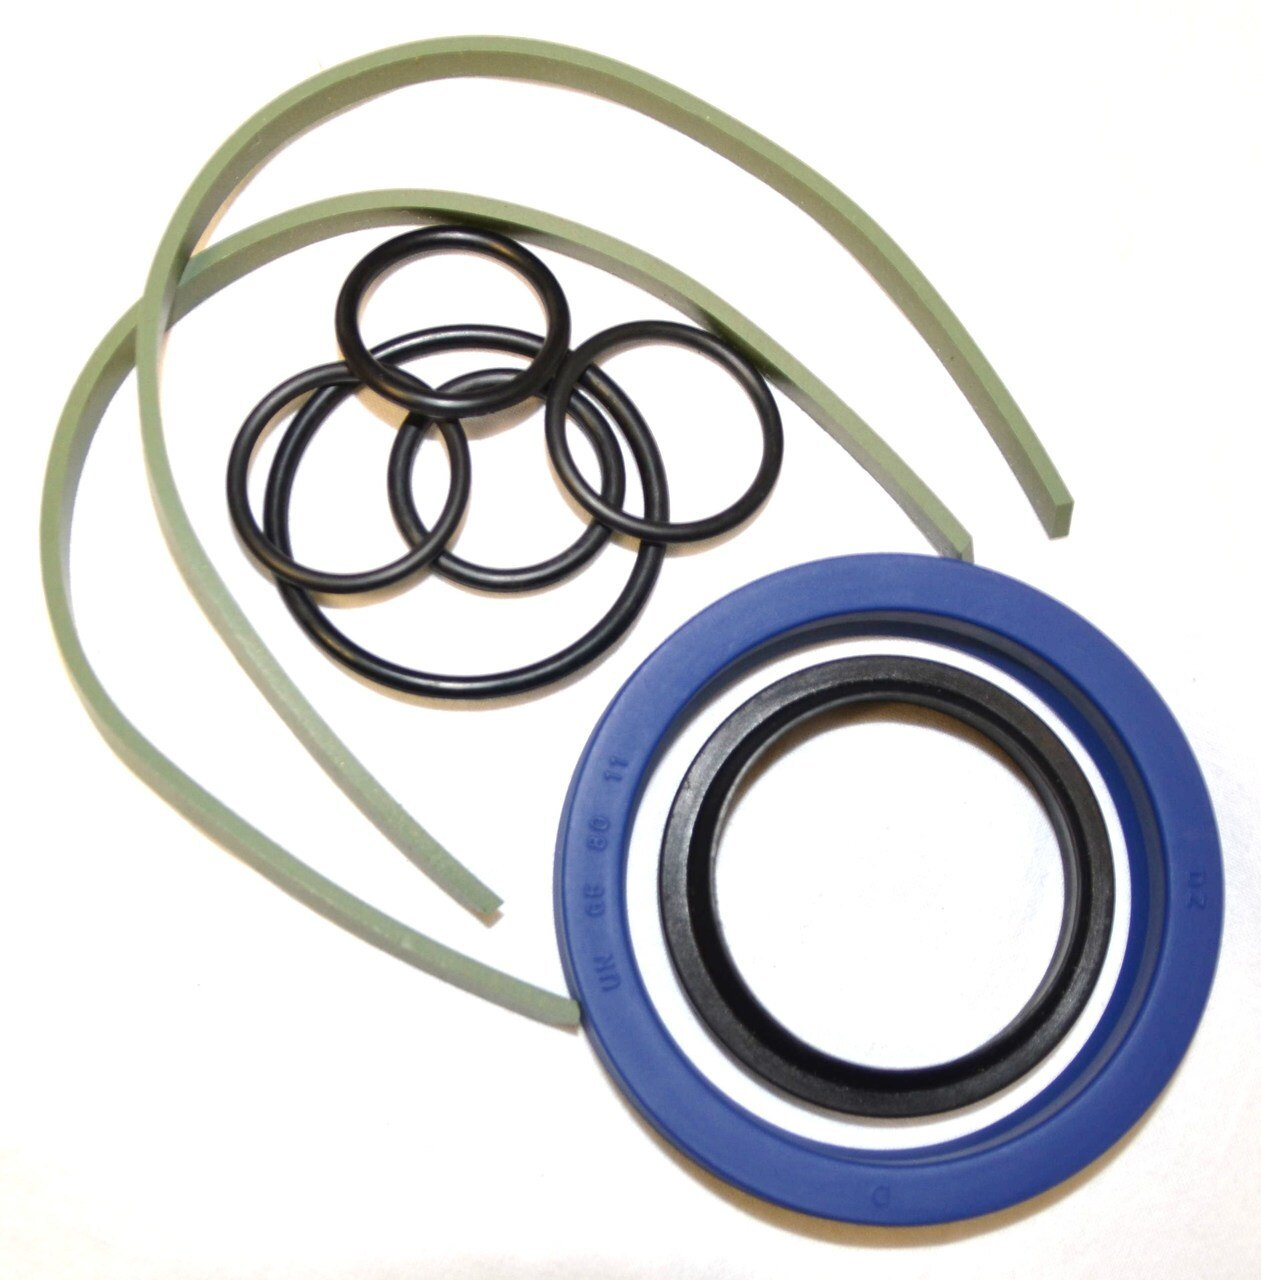 YG04-9180UK Universal Seal Kit for YG31-9100 and YG04-9100 Chain Style Cylinders for PROV10 Two Post Lift.